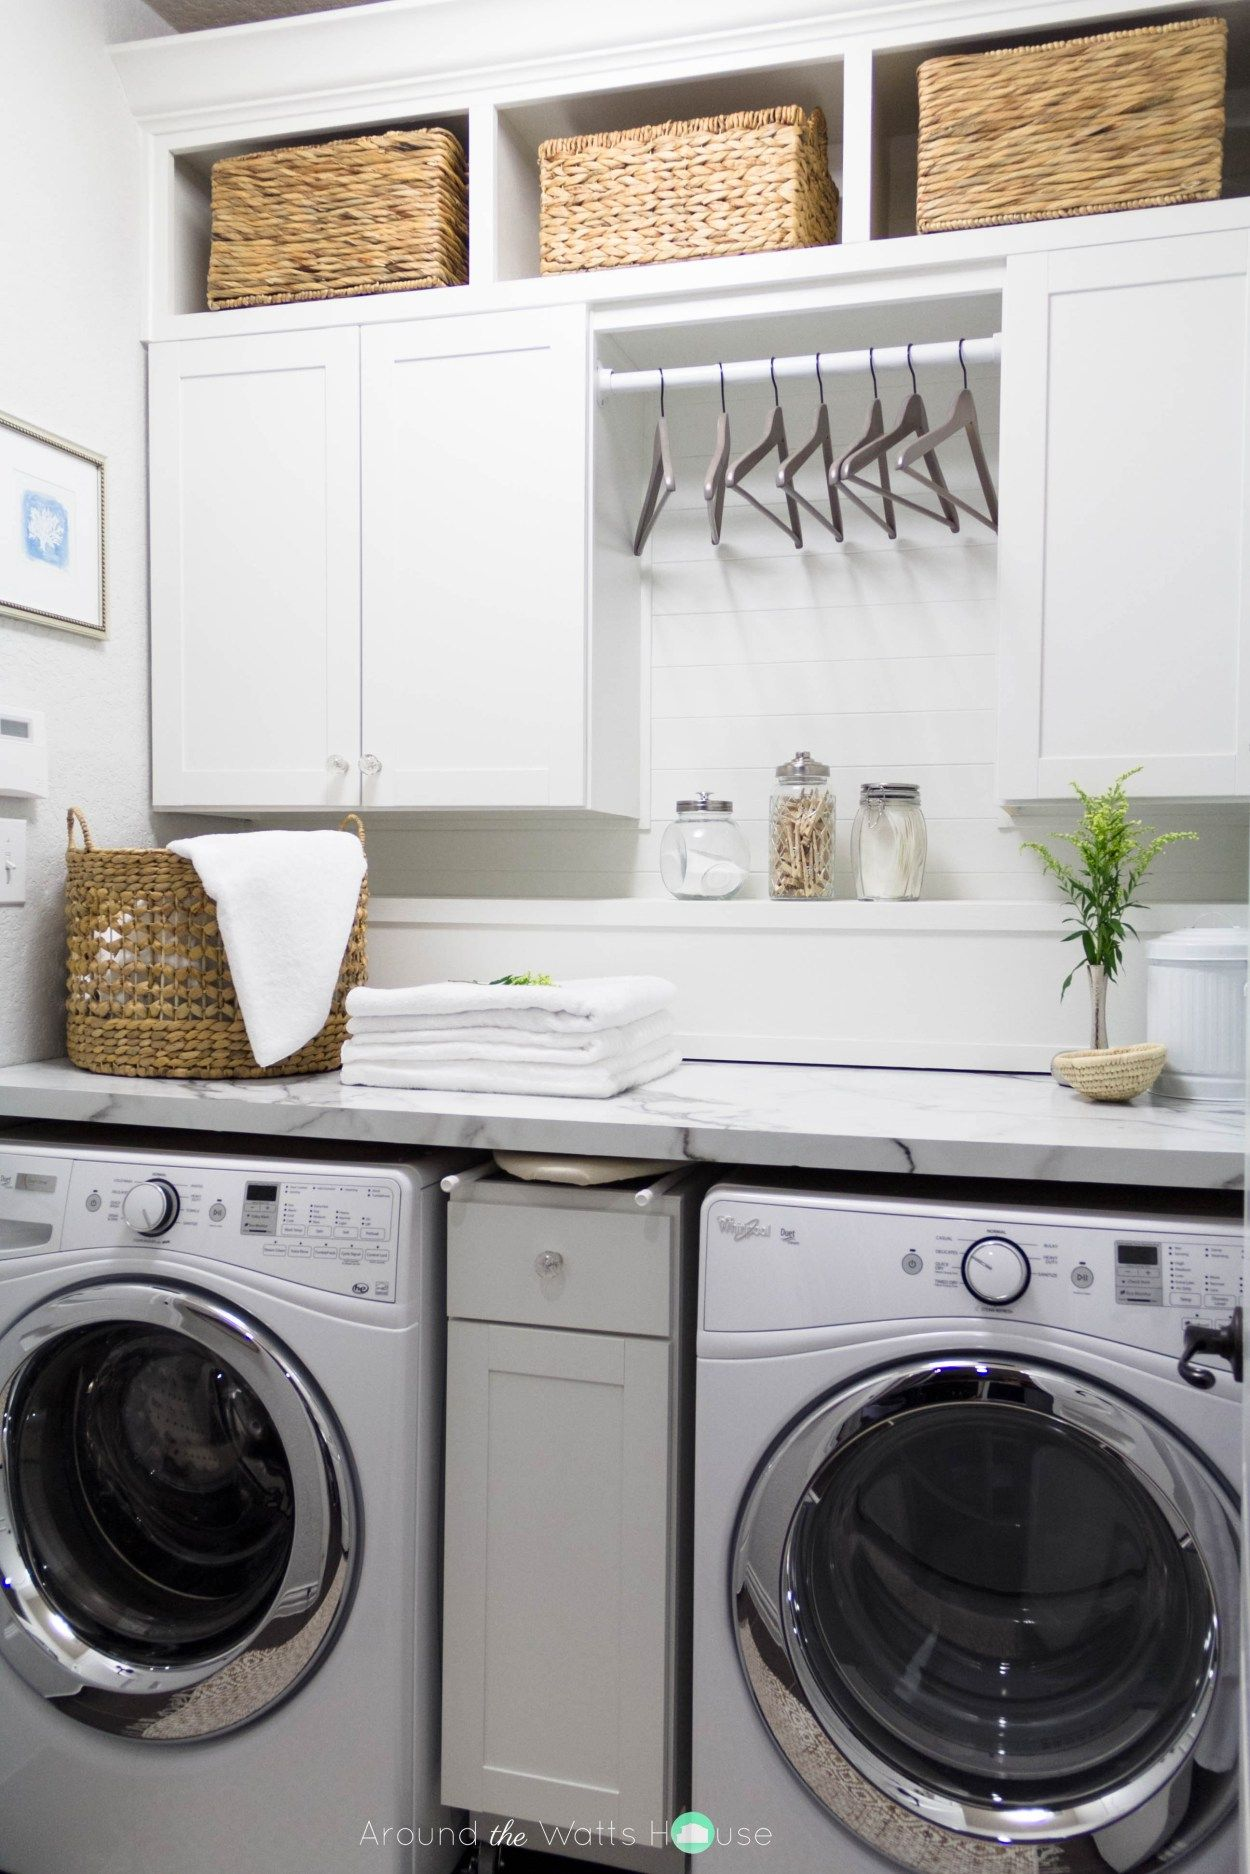 Beautiful Laundry Room Lowe s Formica Laminate180fx Etchings Calacatta Marble kitchen countertop sheet removable box